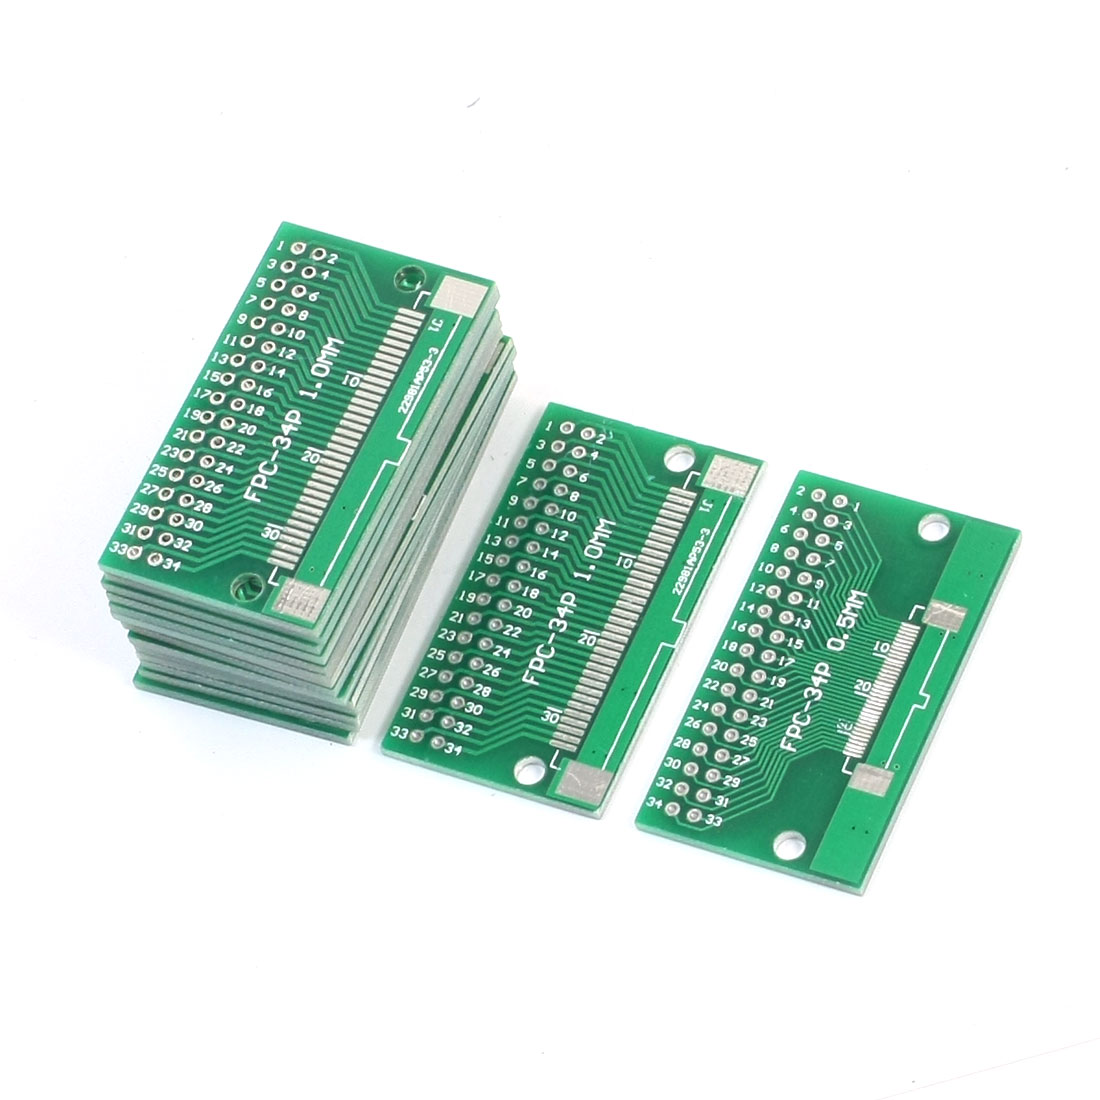 15pCS 46mm x 26mm FPC-34P SOP34 1mm 0.5mm to DIP34 2.54mm Pitch Interposer PCB Board Adapter Plate Converter